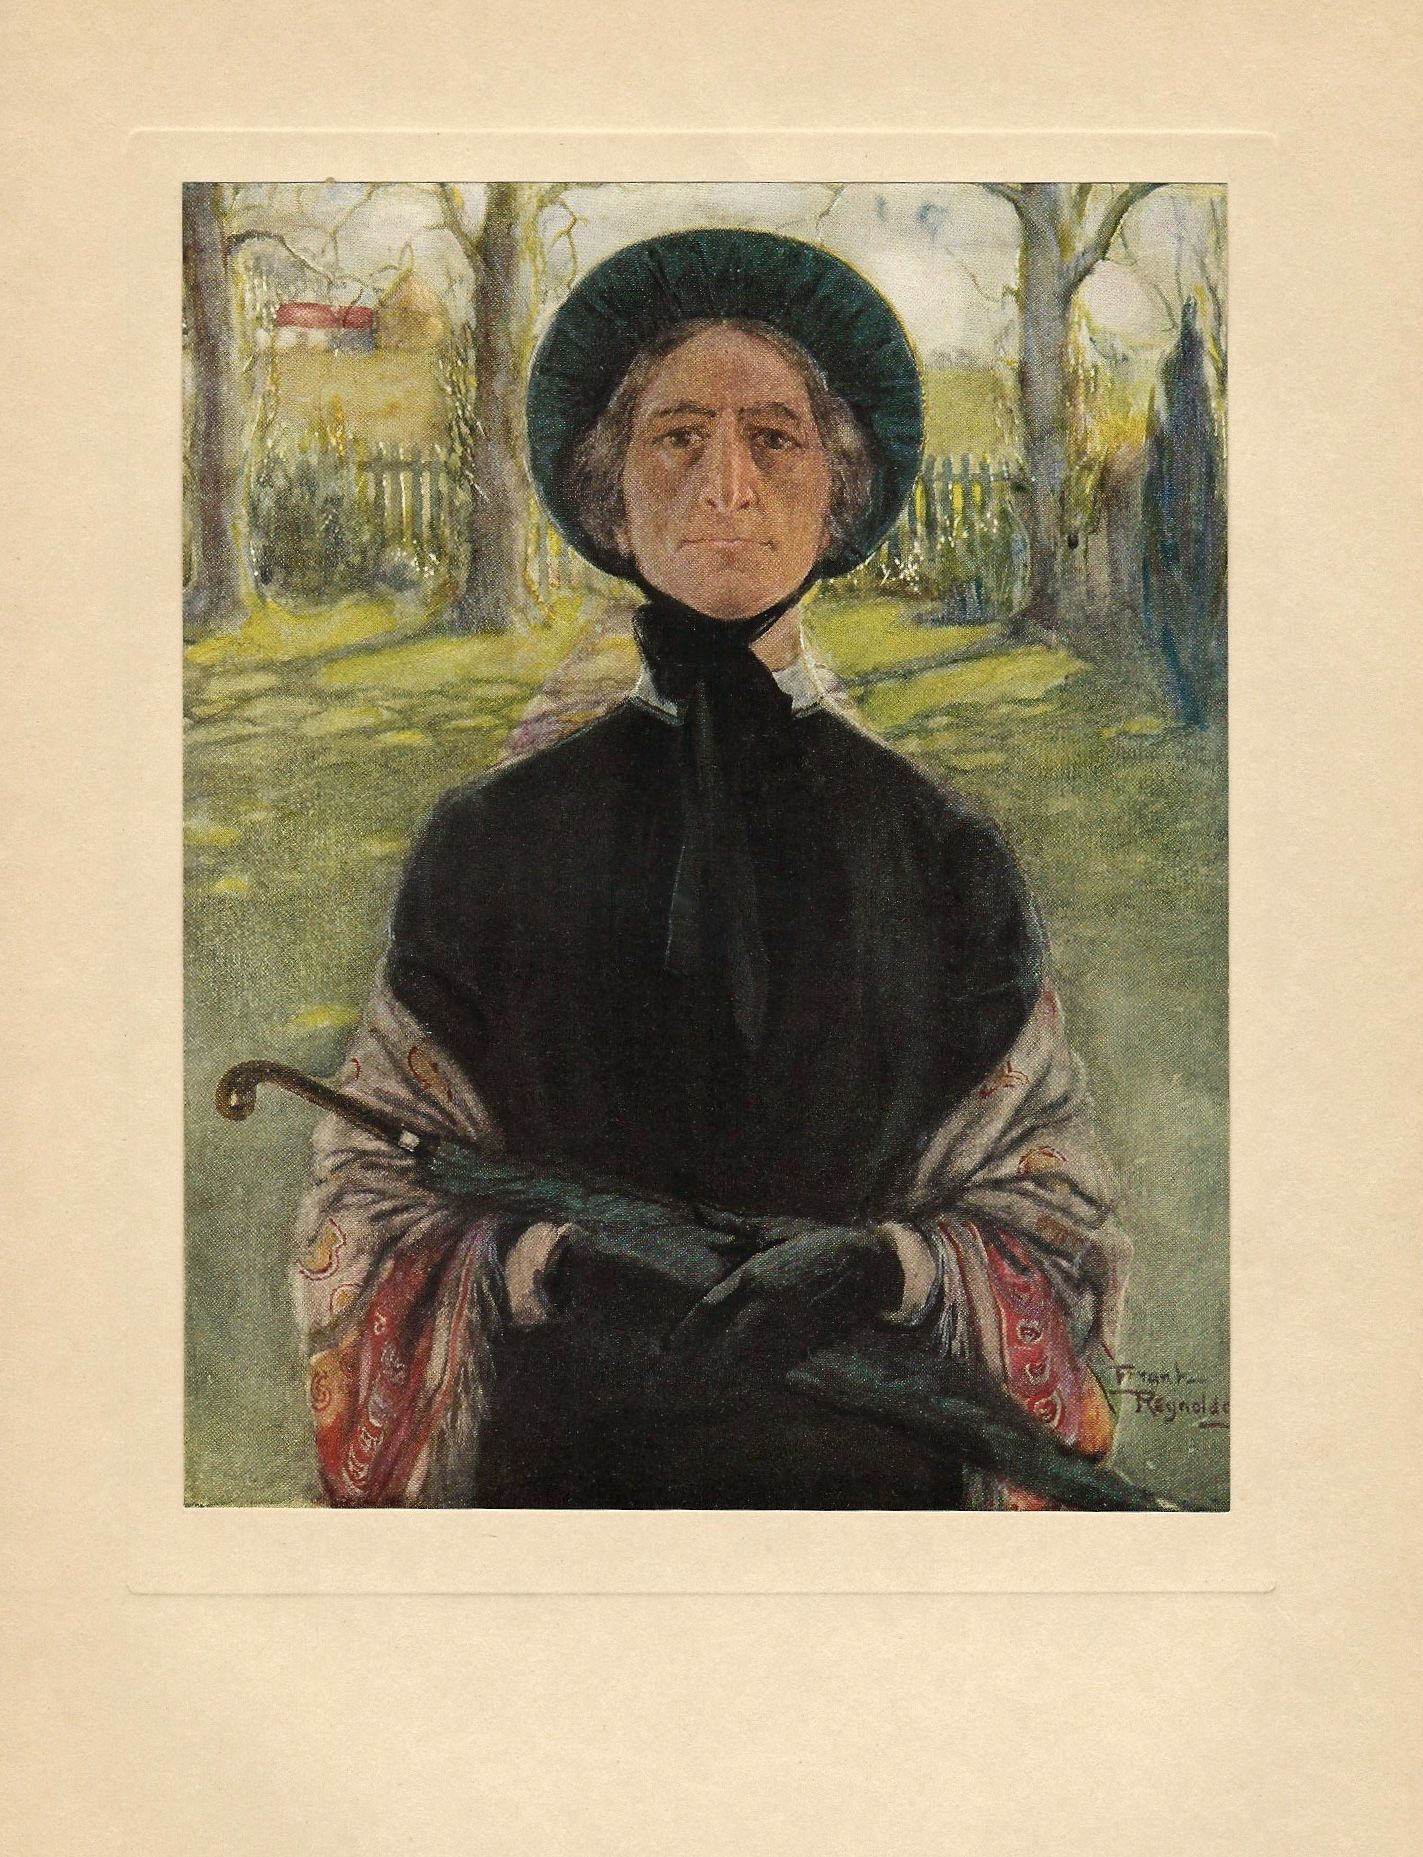 character in david copperfield miss betsey trotwood a illustration  miss betsey trotwood a illustration by frank reynolds for miss betsey trotwood a 1923 illustration by